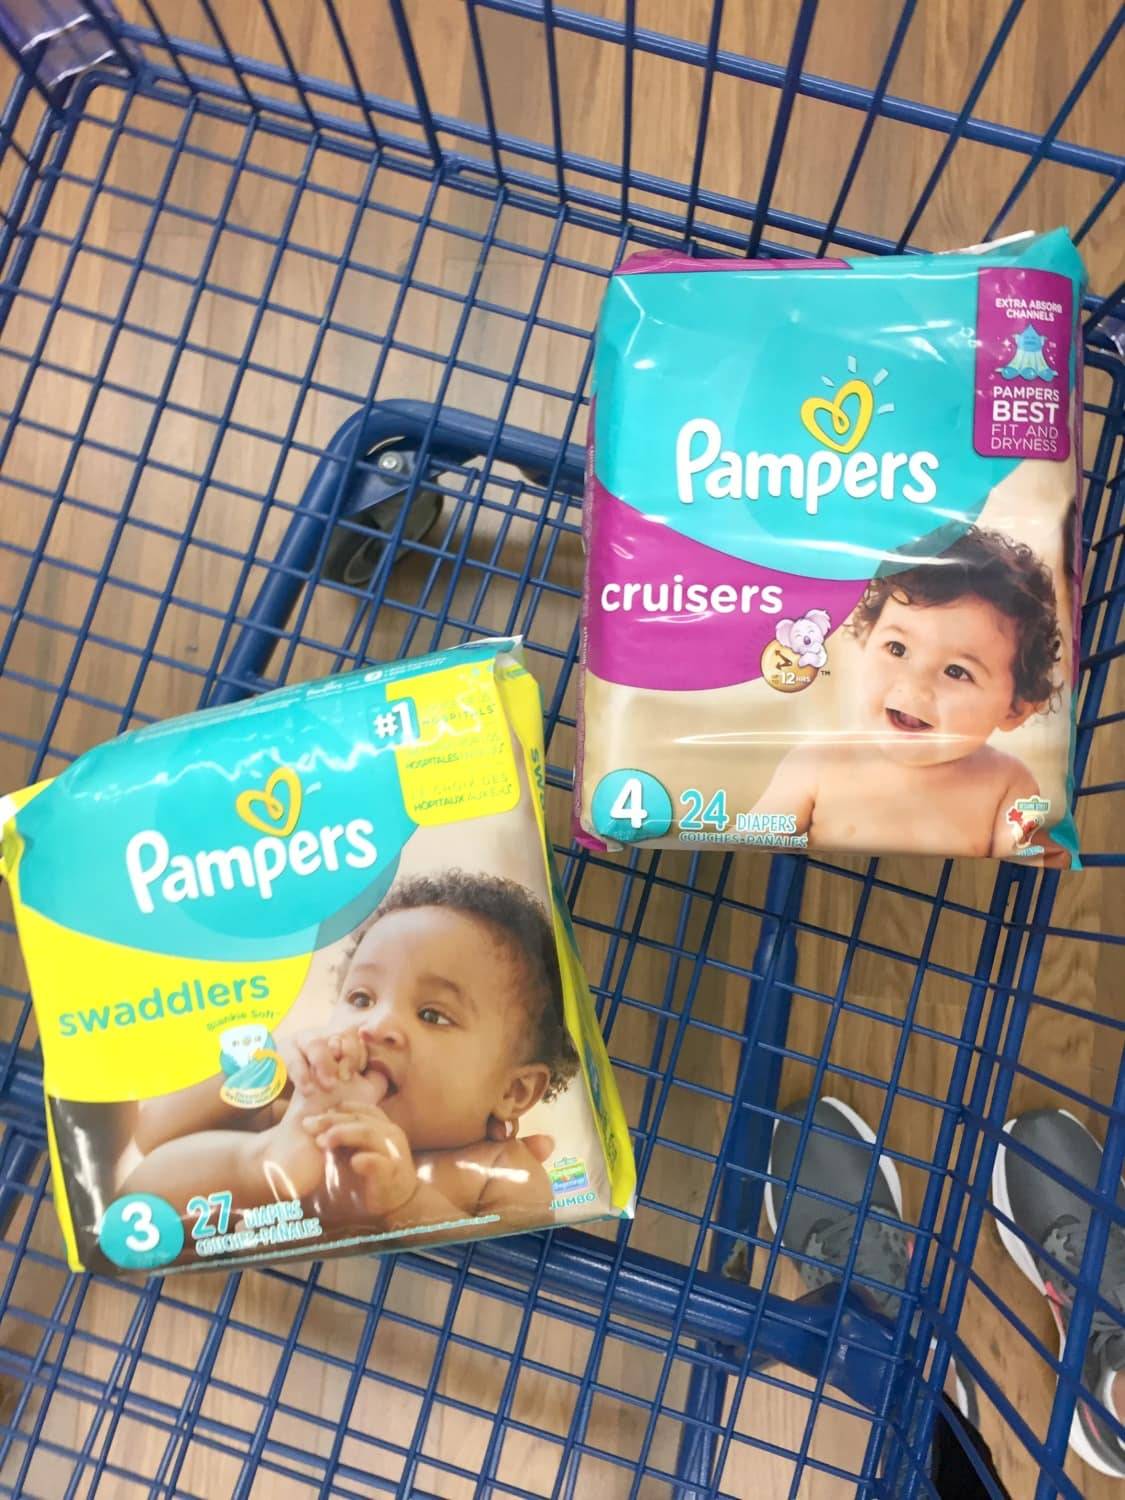 Pampers at Meijer